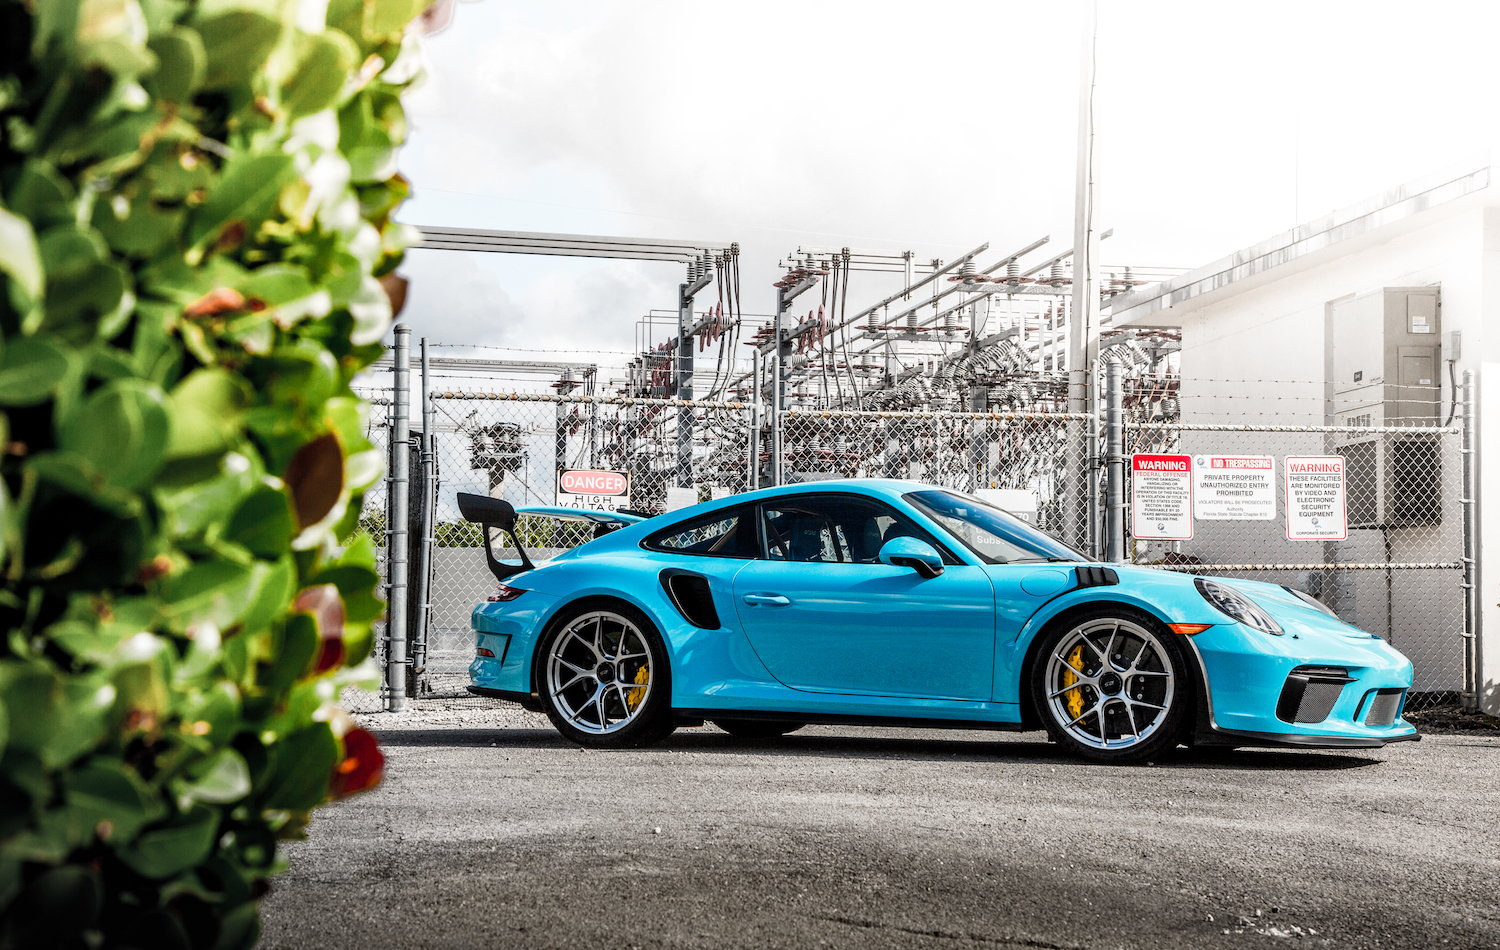 2016 Lava 2019 Miami Blue Modded Gt3rs For Sale 6speedonline Porsche Forum And Luxury Car Resource